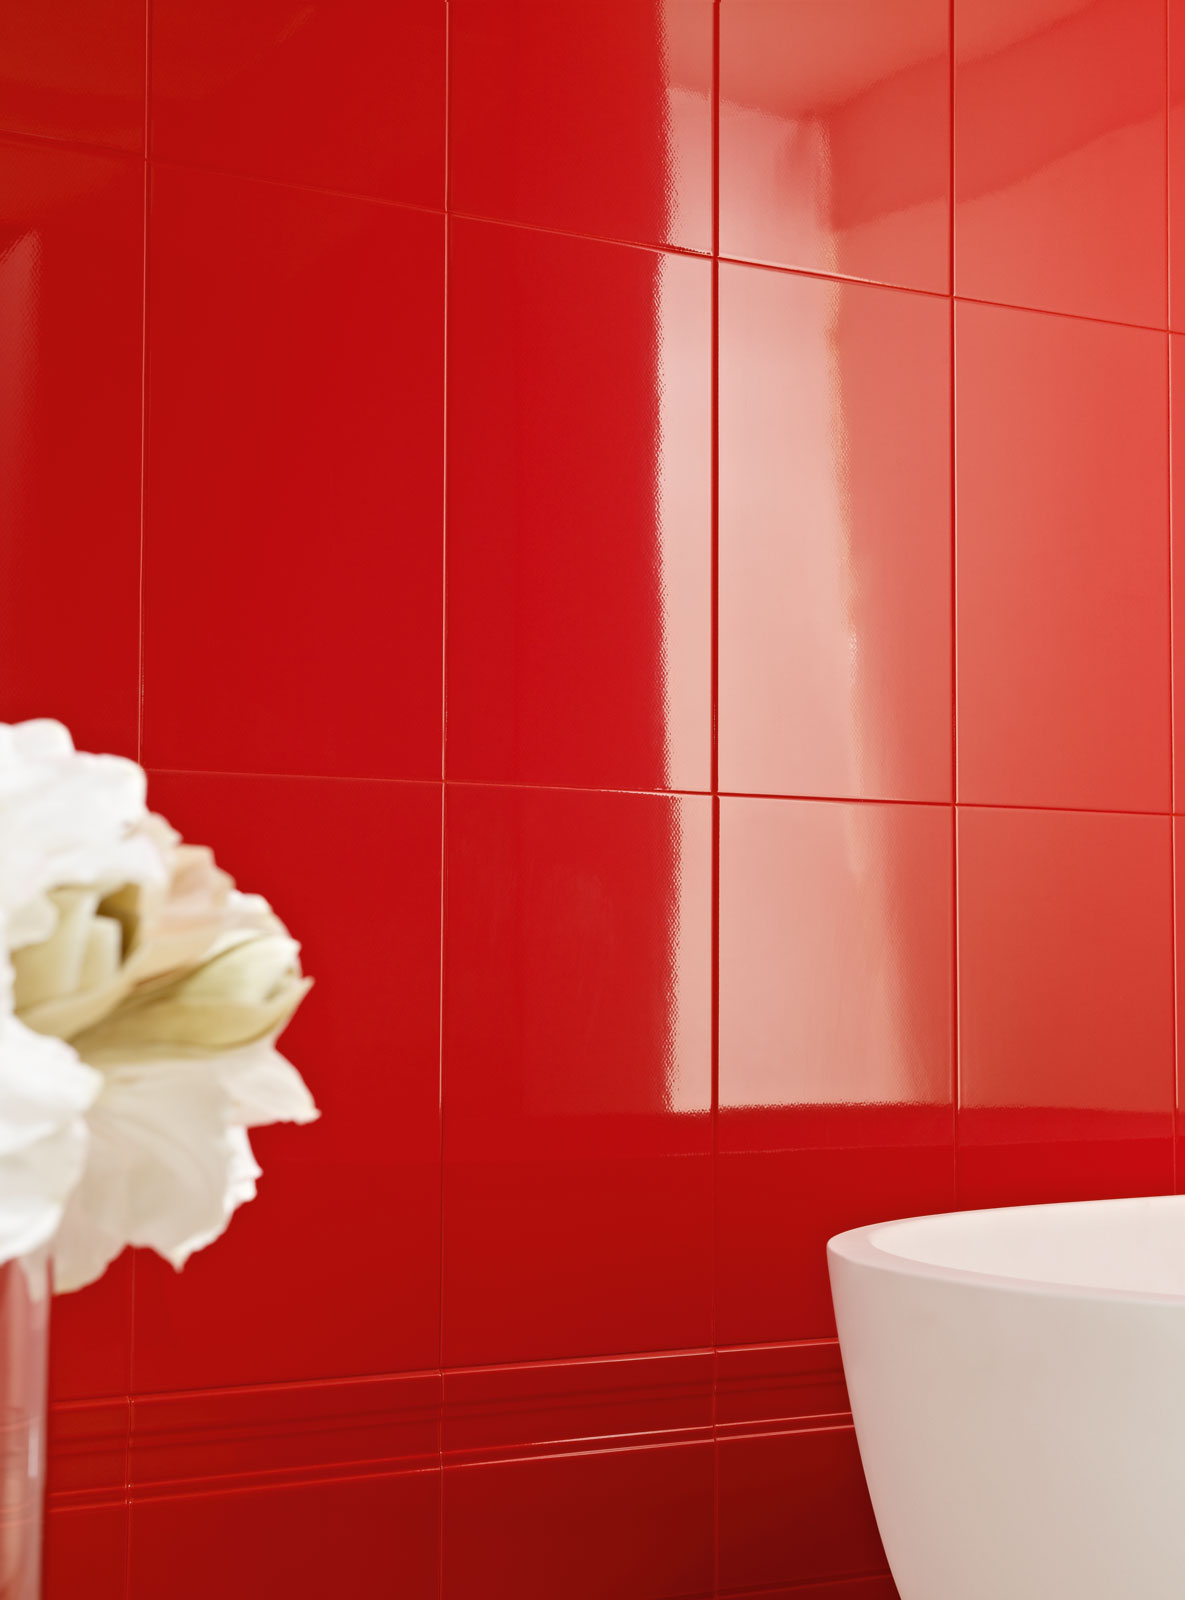 Palace marazzi for Piastrelle cucina rosse